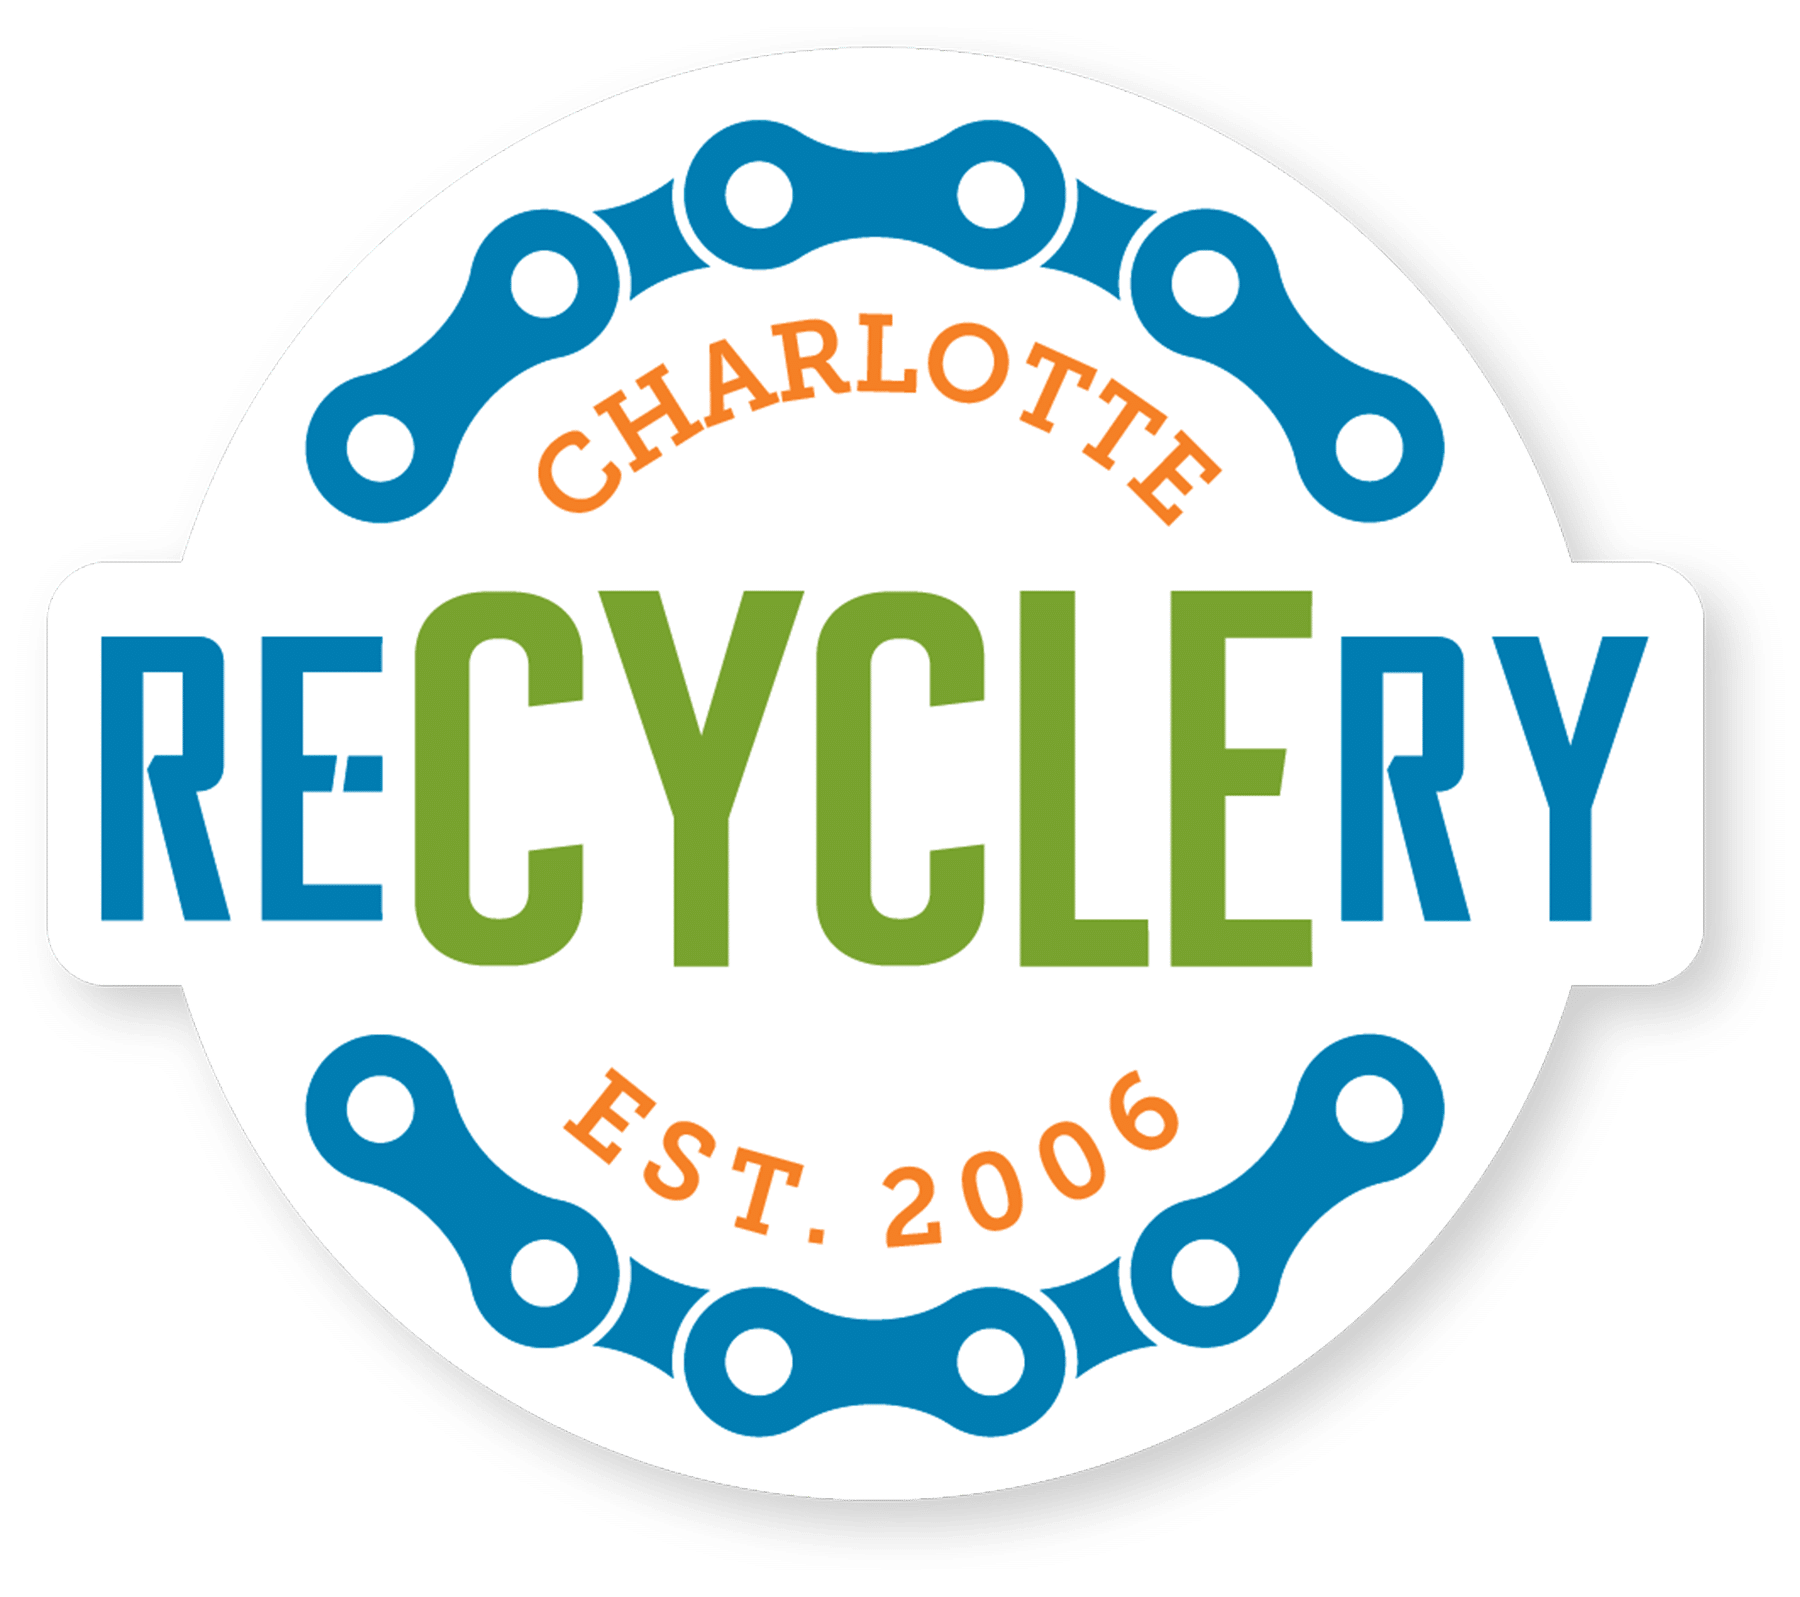 Charlotte Recyclery